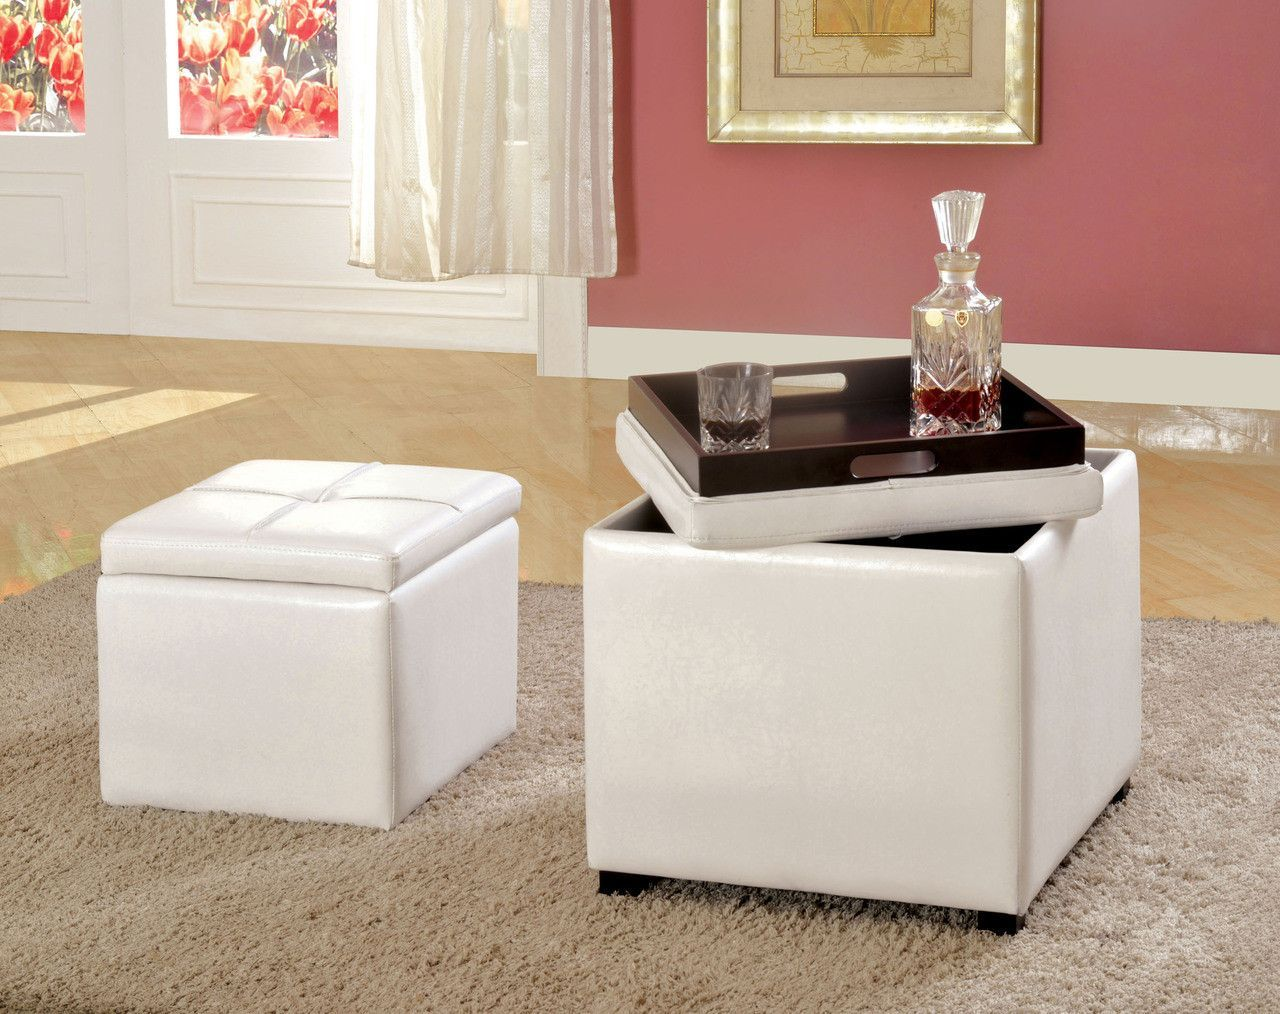 Ottoman W Flip Top Tray Adel Collection This Unique E Effi Cient Design Off Ers Two Ottomans For The Size Of One A Second Smaller